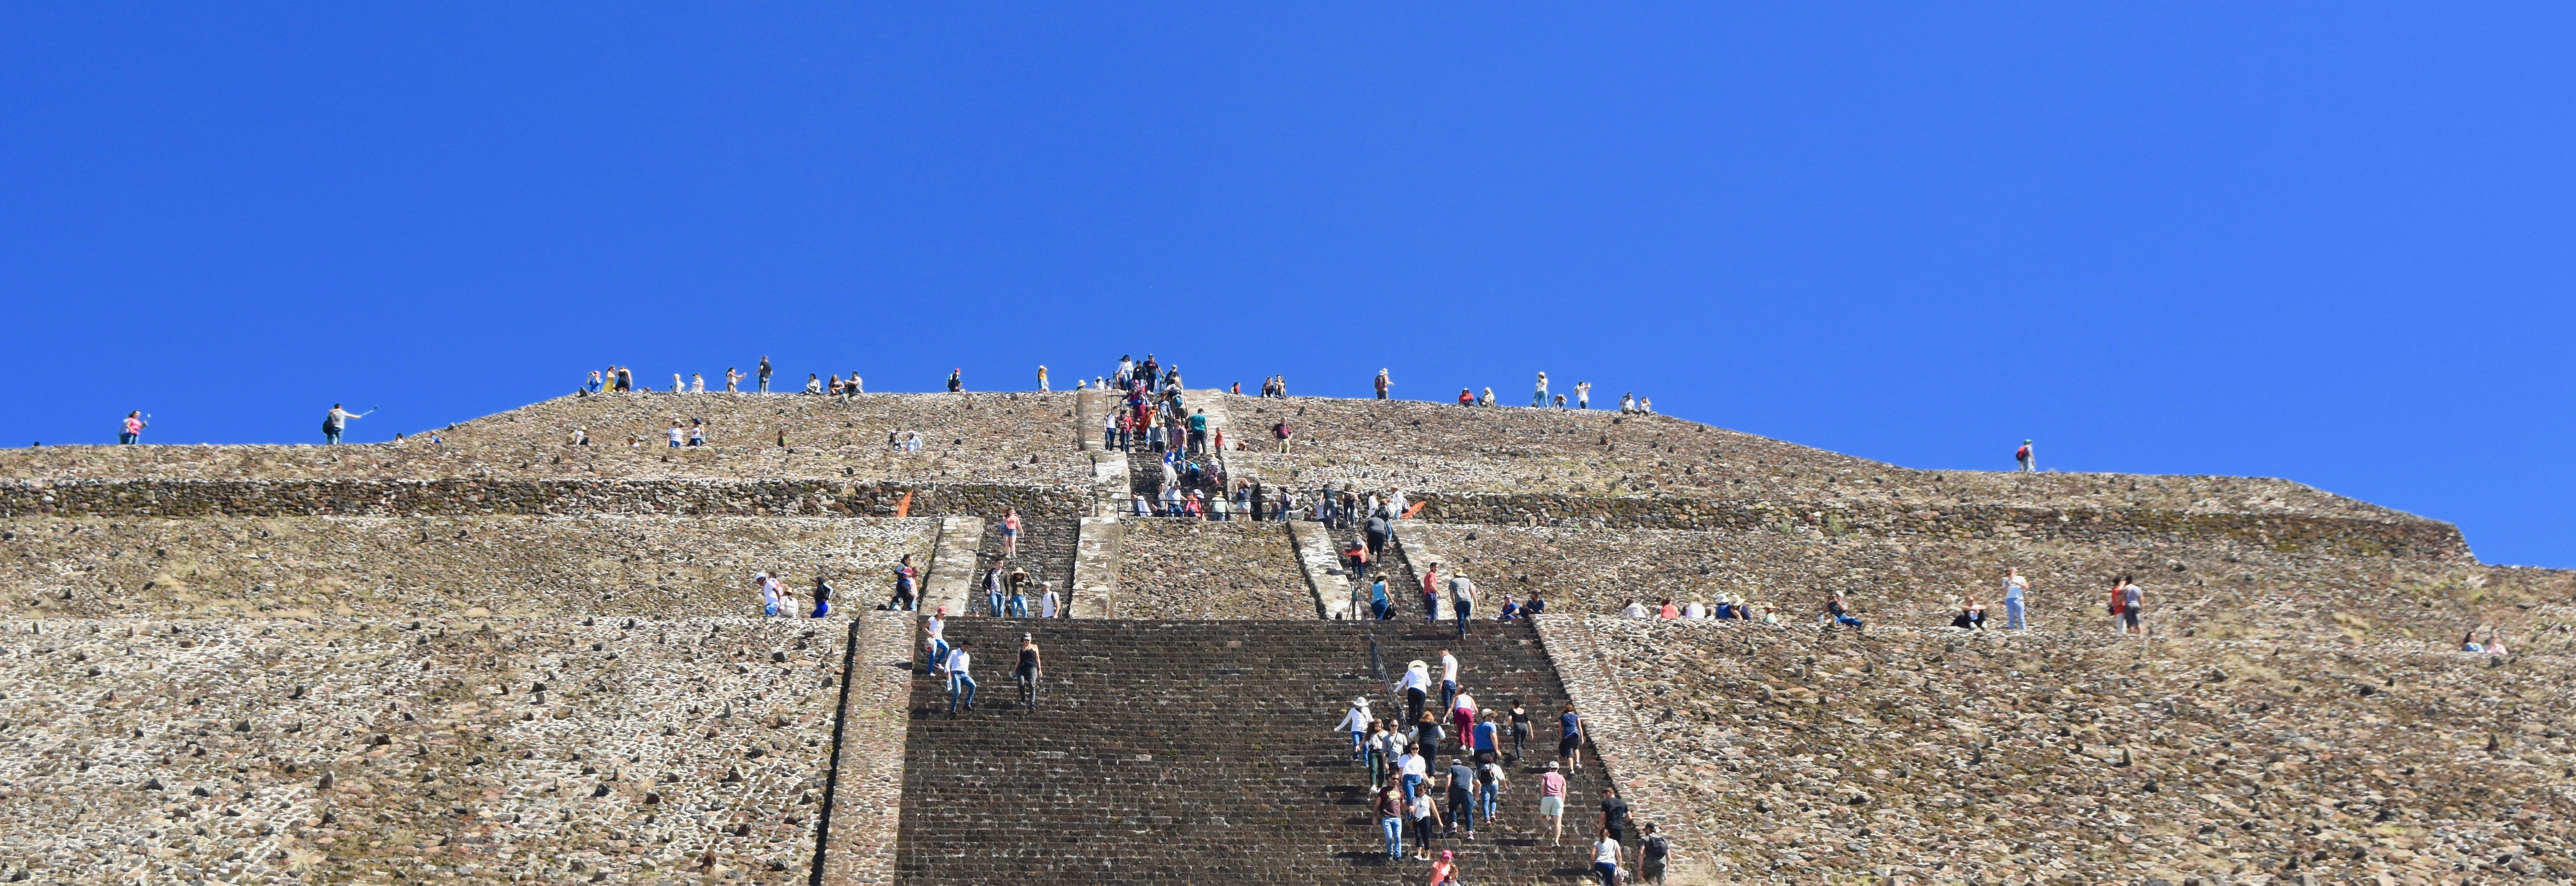 Looking Up at the Steps at Teotihuacan